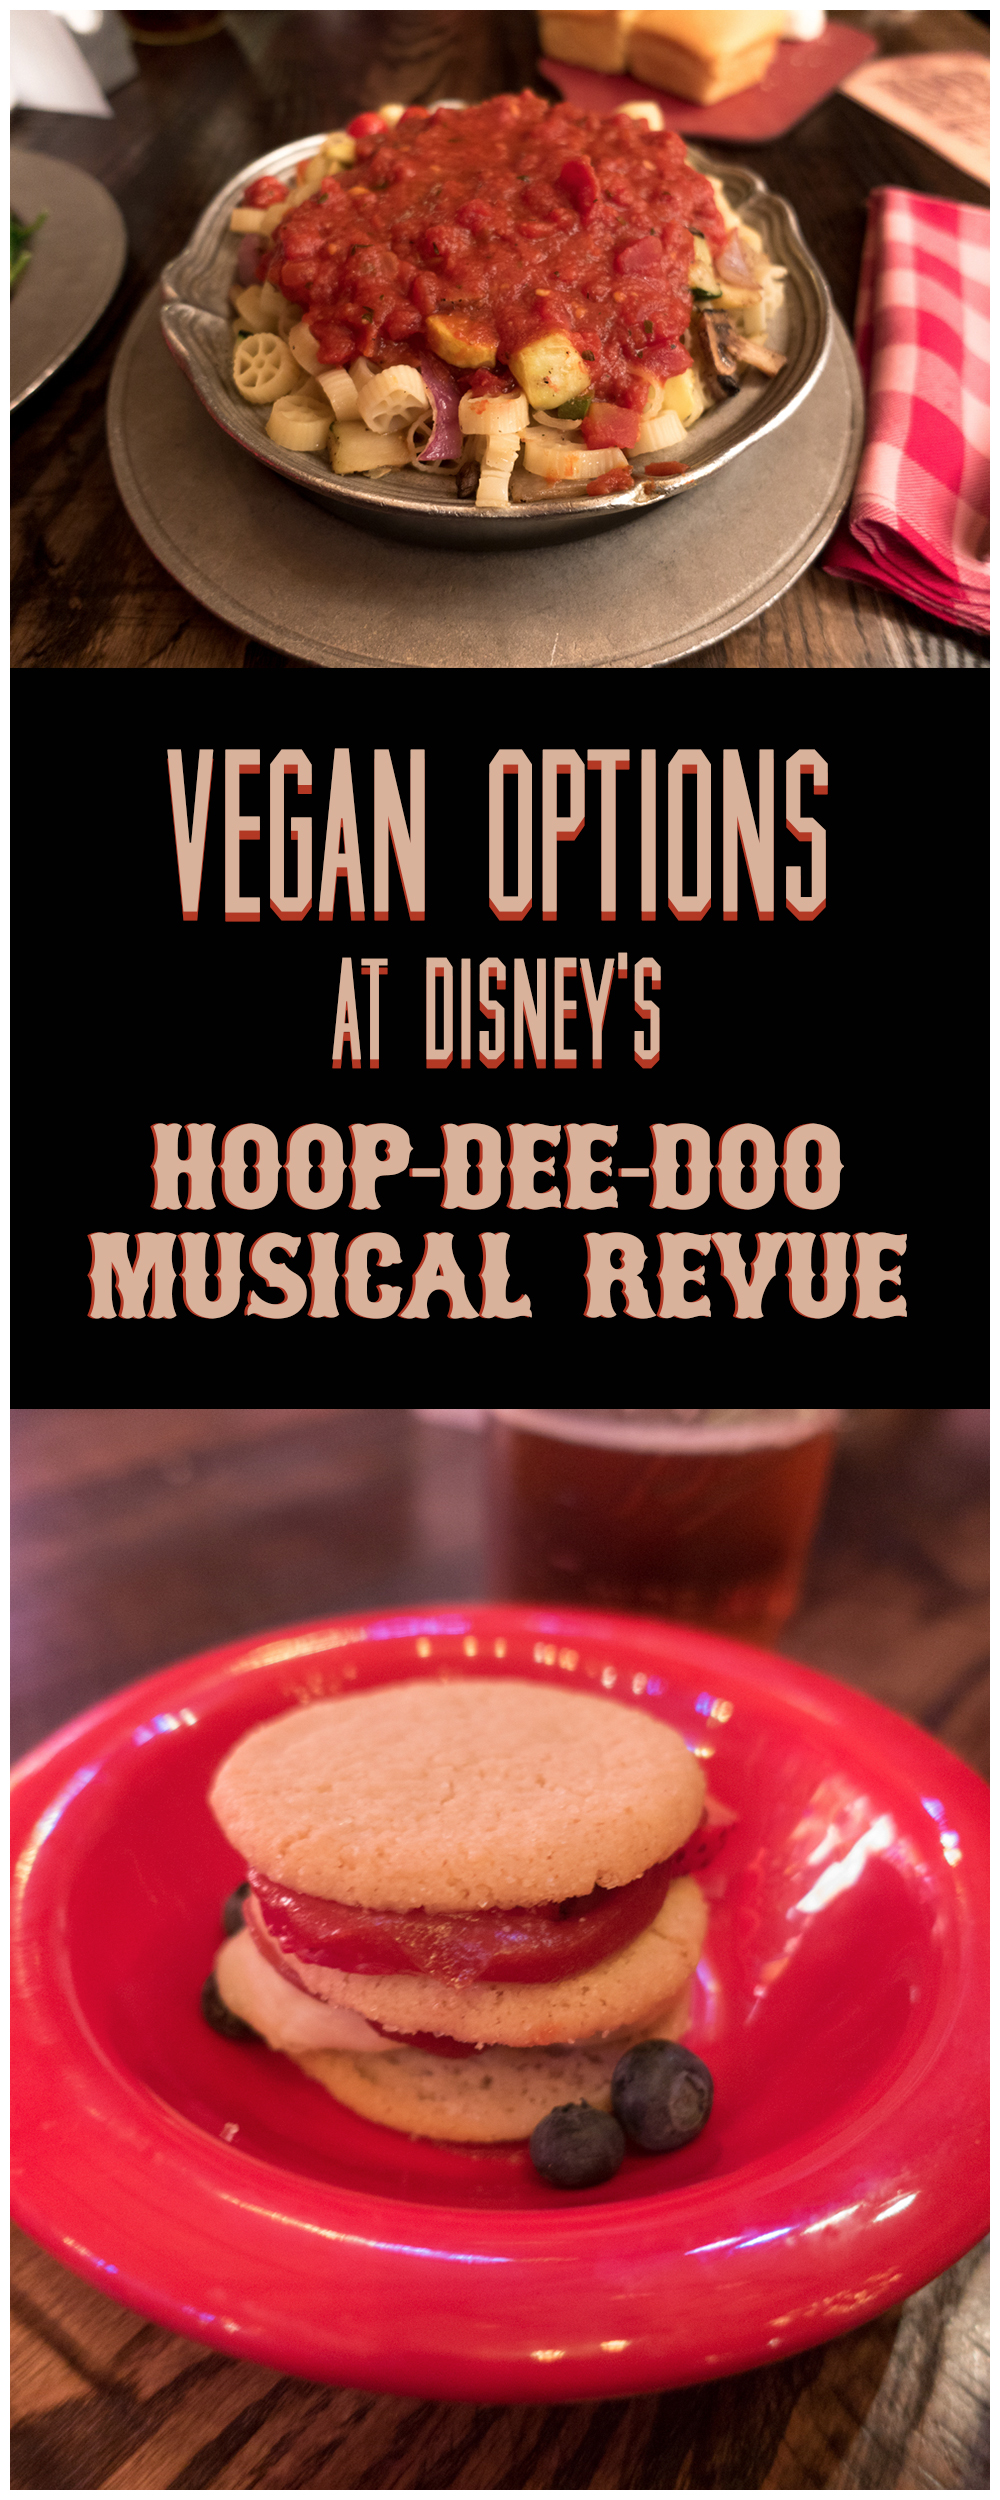 Attending the Hoop-dee-doo Revue at Disney's Wilderness Lodge? Check out the vegan and vegetarian options that they offer! #vegan #disneyworld